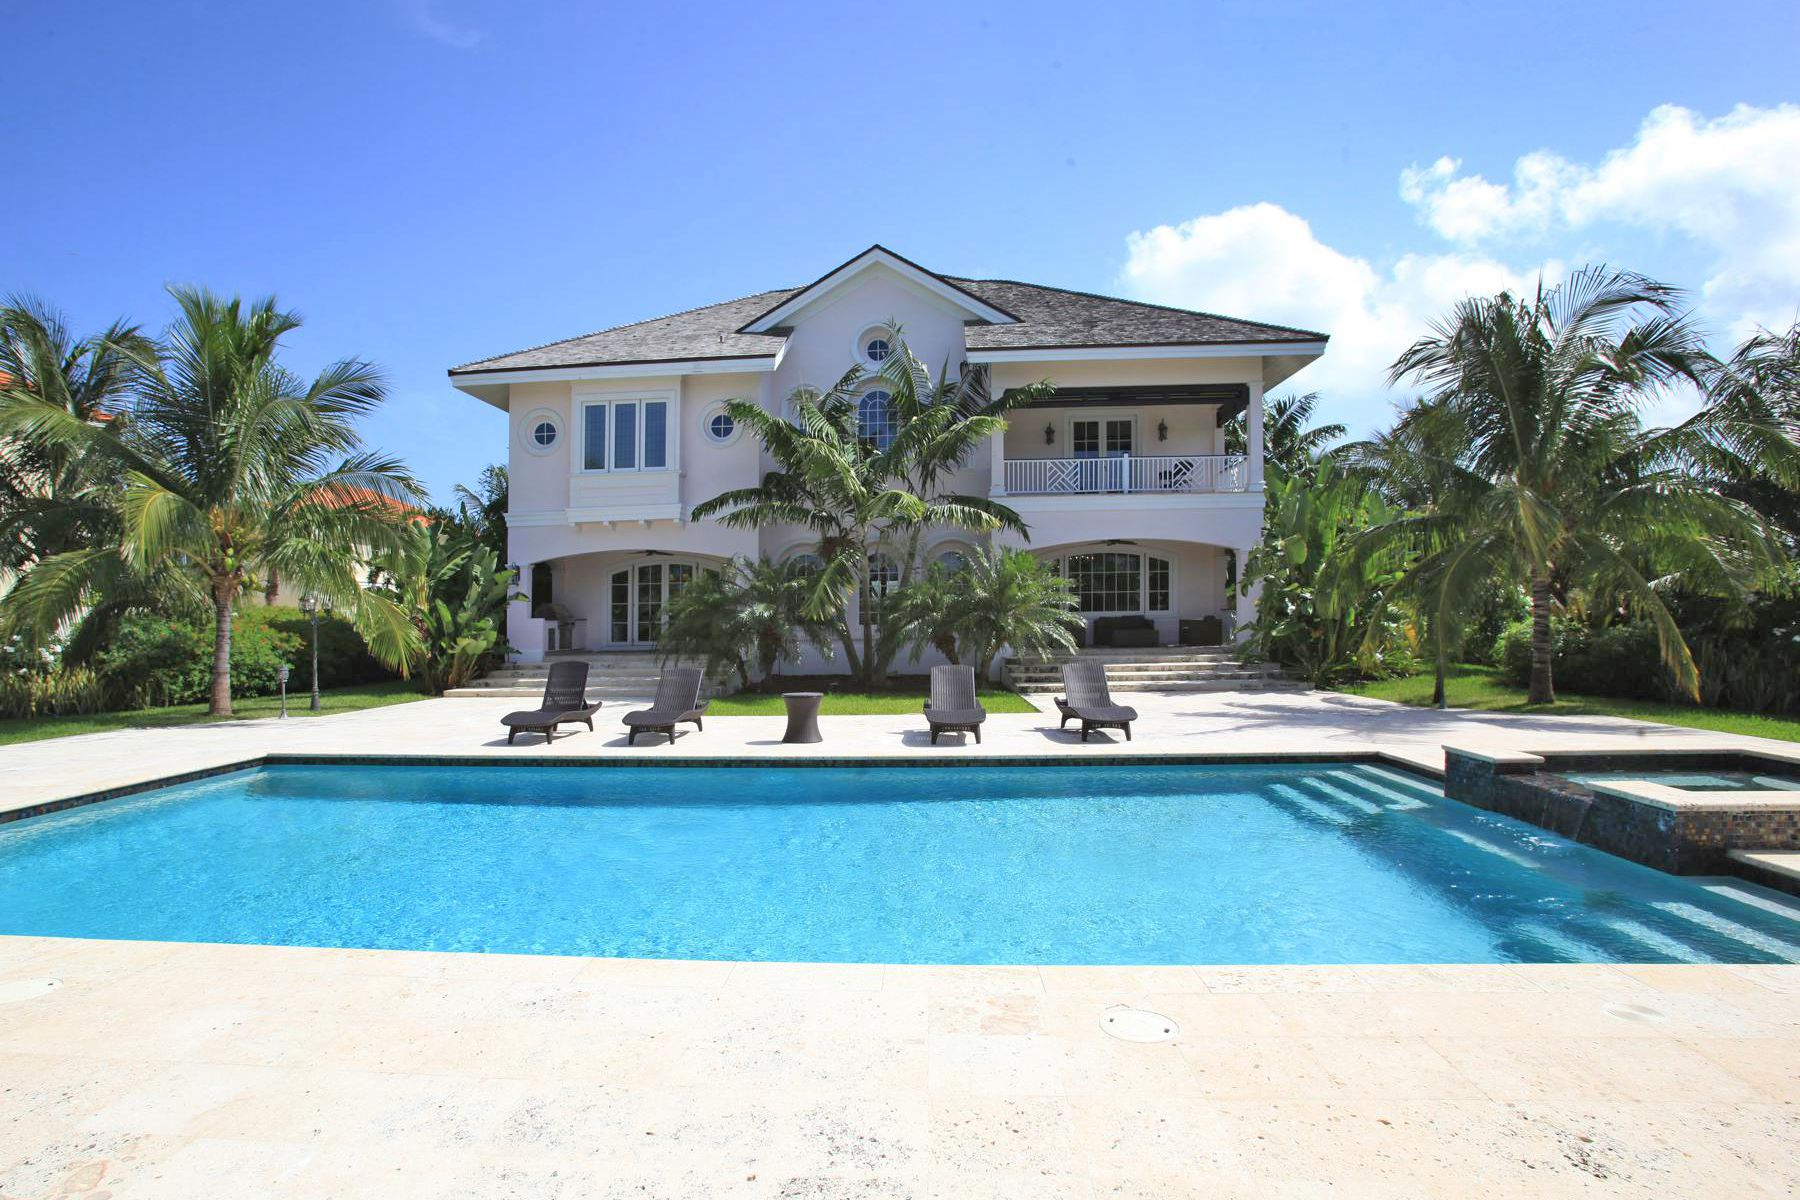 Single Family Home for Rent at Ocean Club Estates Ocean Club Estates, Paradise Island, Nassau And Paradise Island Bahamas